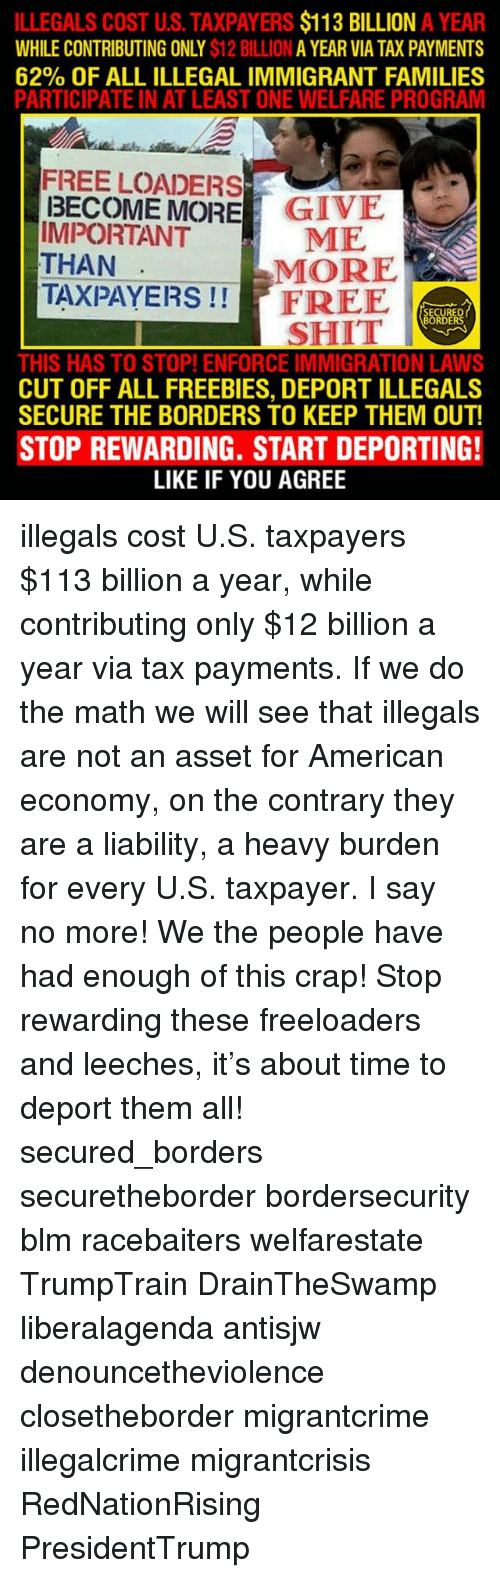 Memes, Say No More, and 🤖: ILLEGALS COST US. TAXPAYERS  $113 BILLION A YEAR  WHILE CONTRIBUTING ONLY  $12 BILLION  A YEAR VIA TAX PAYMENTS  62% OF ALL ILLEGAL IMMIGRANT FAMILIES  PARTICIPATE IN AT LEAST ONE WELFARE PROGRAM  FREE LOADERS  BECOME MORE  GIVE  IMPORTANT  ME  THAN  MORE  TAXPAYERS  FREE  SECURED  SHIT  BORDERS  THIS HAS TO STOP! ENFORCE IMMIGRATION LAWS  CUT OFF ALL FREEBIES, DEPORT ILLEGALS  SECURE THE BORDERS TO KEEP THEM OUT!  STOP REWARDING. START DEPORTING!  LIKE IF YOU AGREE illegals cost U.S. taxpayers $113 billion a year, while contributing only $12 billion a year via tax payments. If we do the math we will see that illegals are not an asset for American economy, on the contrary they are a liability, a heavy burden for every U.S. taxpayer. I say no more! We the people have had enough of this crap! Stop rewarding these freeloaders and leeches, it's about time to deport them all! secured_borders securetheborder bordersecurity blm racebaiters welfarestate TrumpTrain DrainTheSwamp liberalagenda antisjw denouncetheviolence closetheborder migrantcrime illegalcrime migrantcrisis RedNationRising PresidentTrump